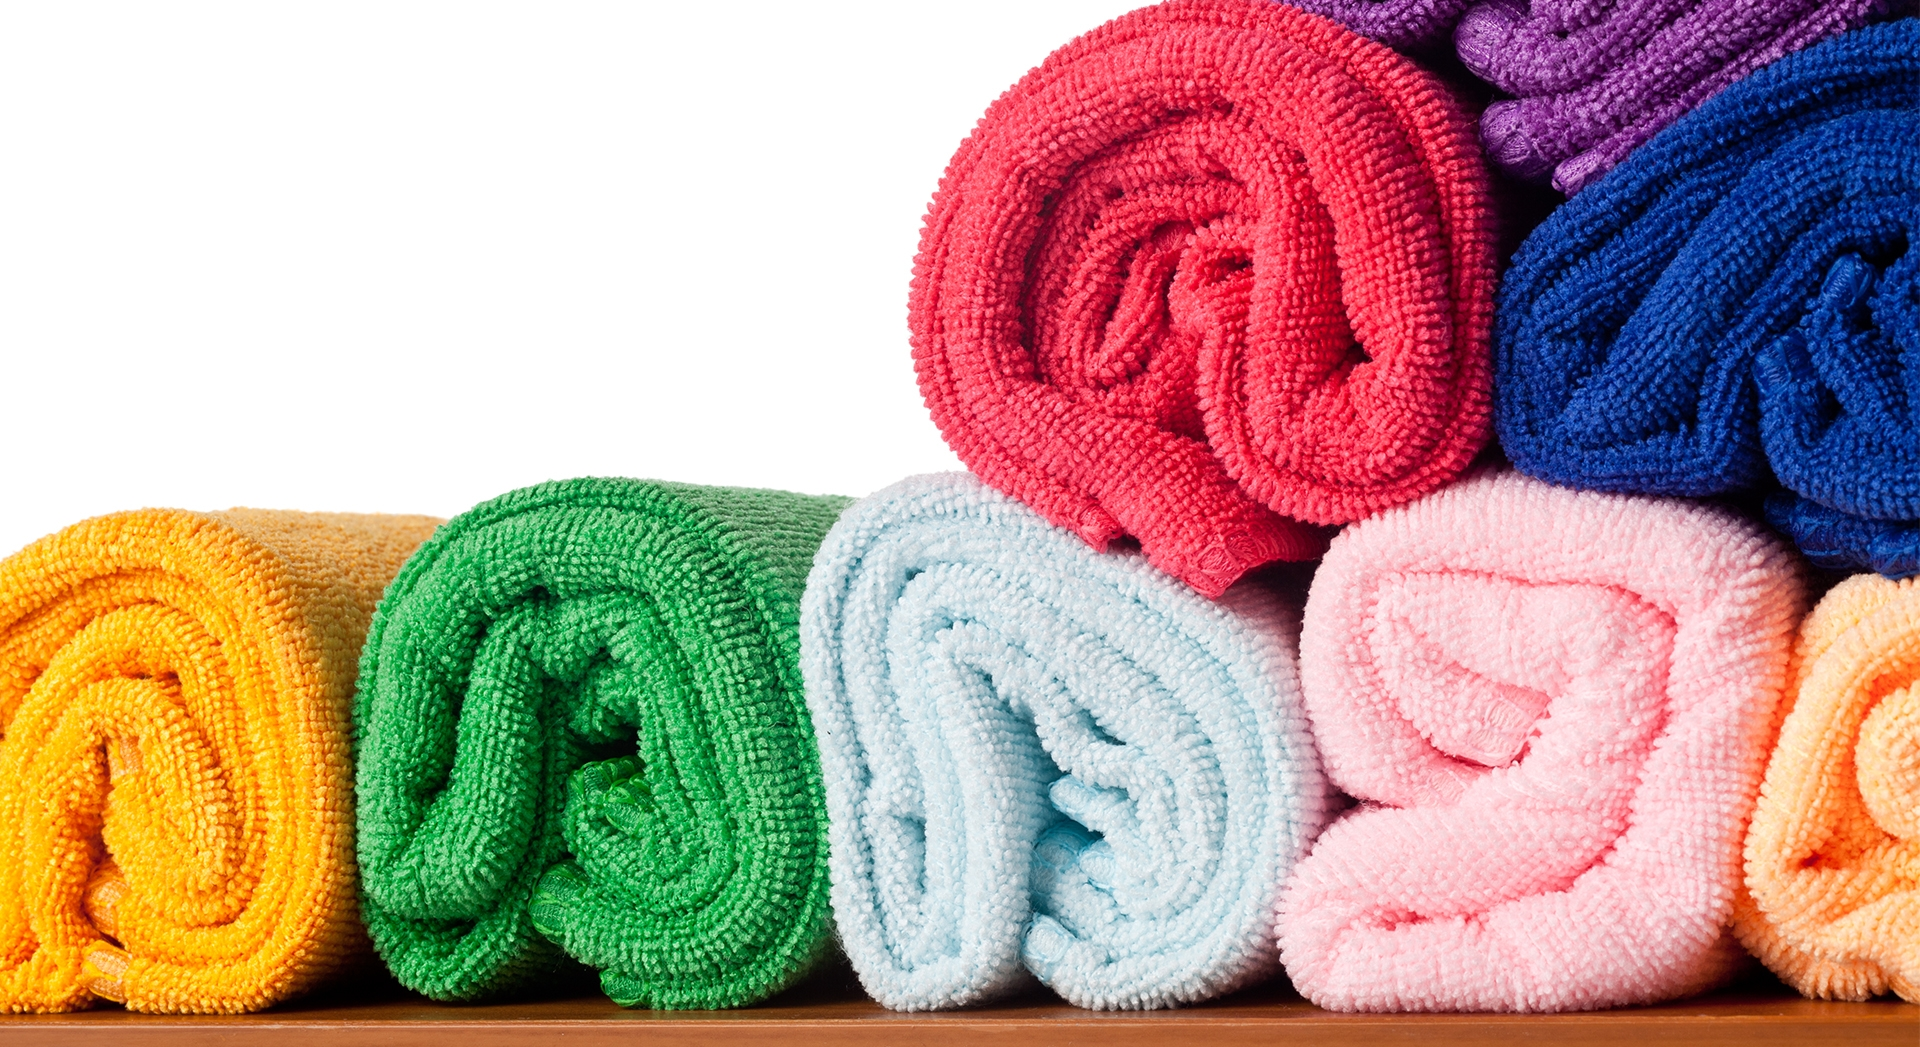 Microfiber. Is it the right choice for cleaning your home?